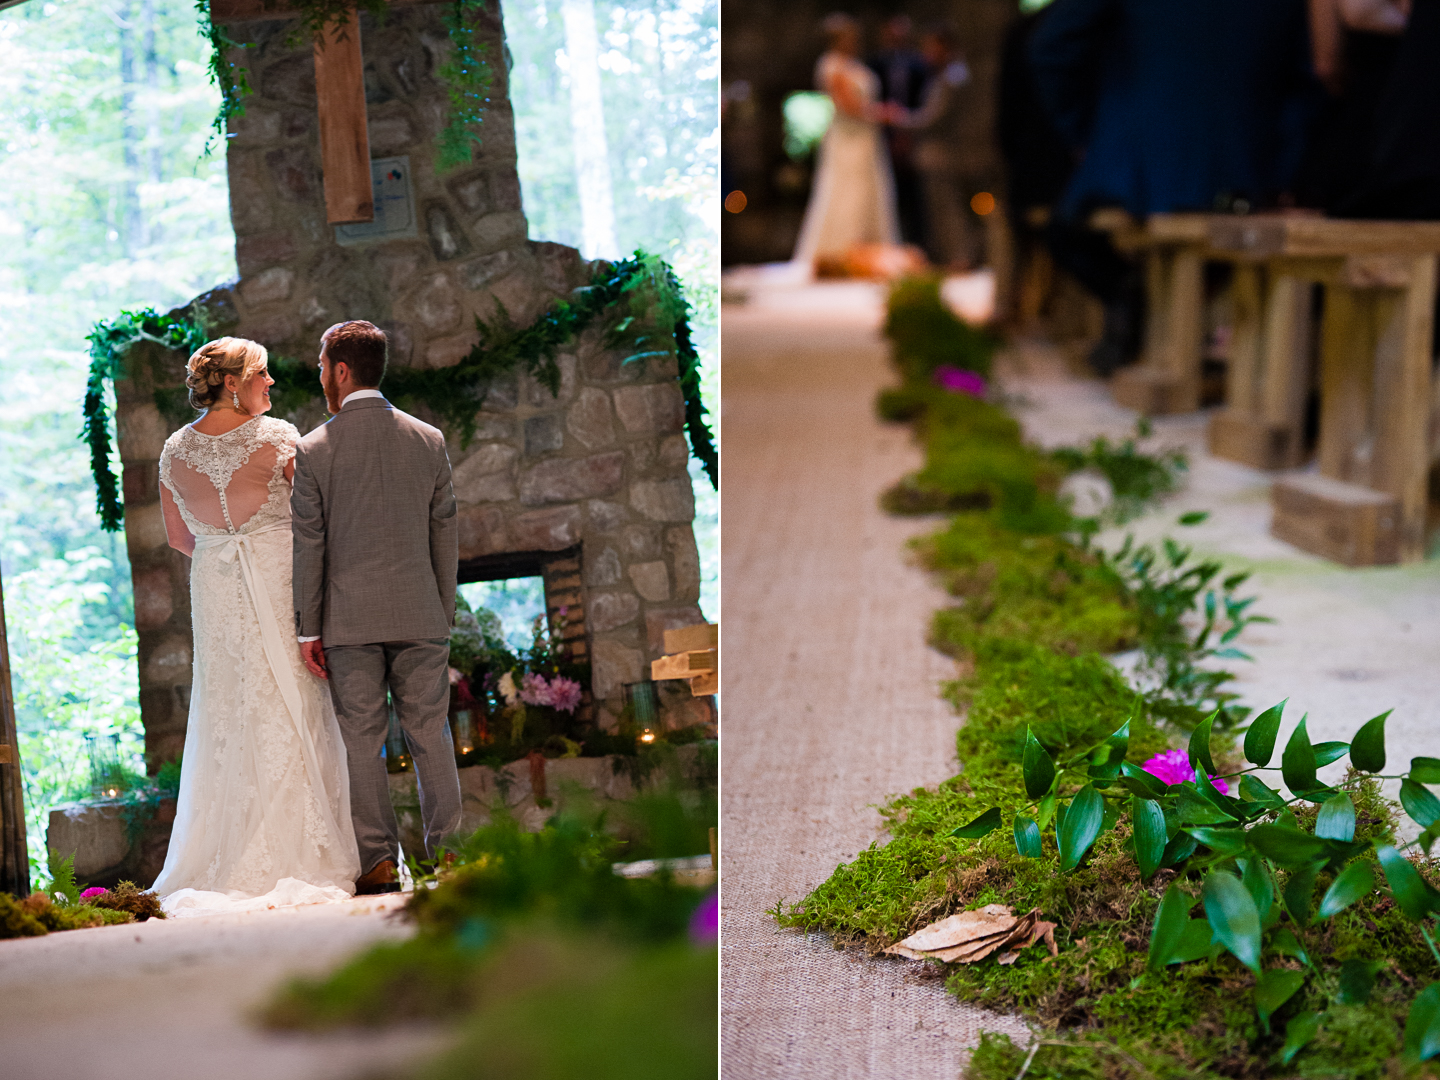 a gorgeous burlap aisle runner with flowers was a highlight of this outdoor wedding ceremony